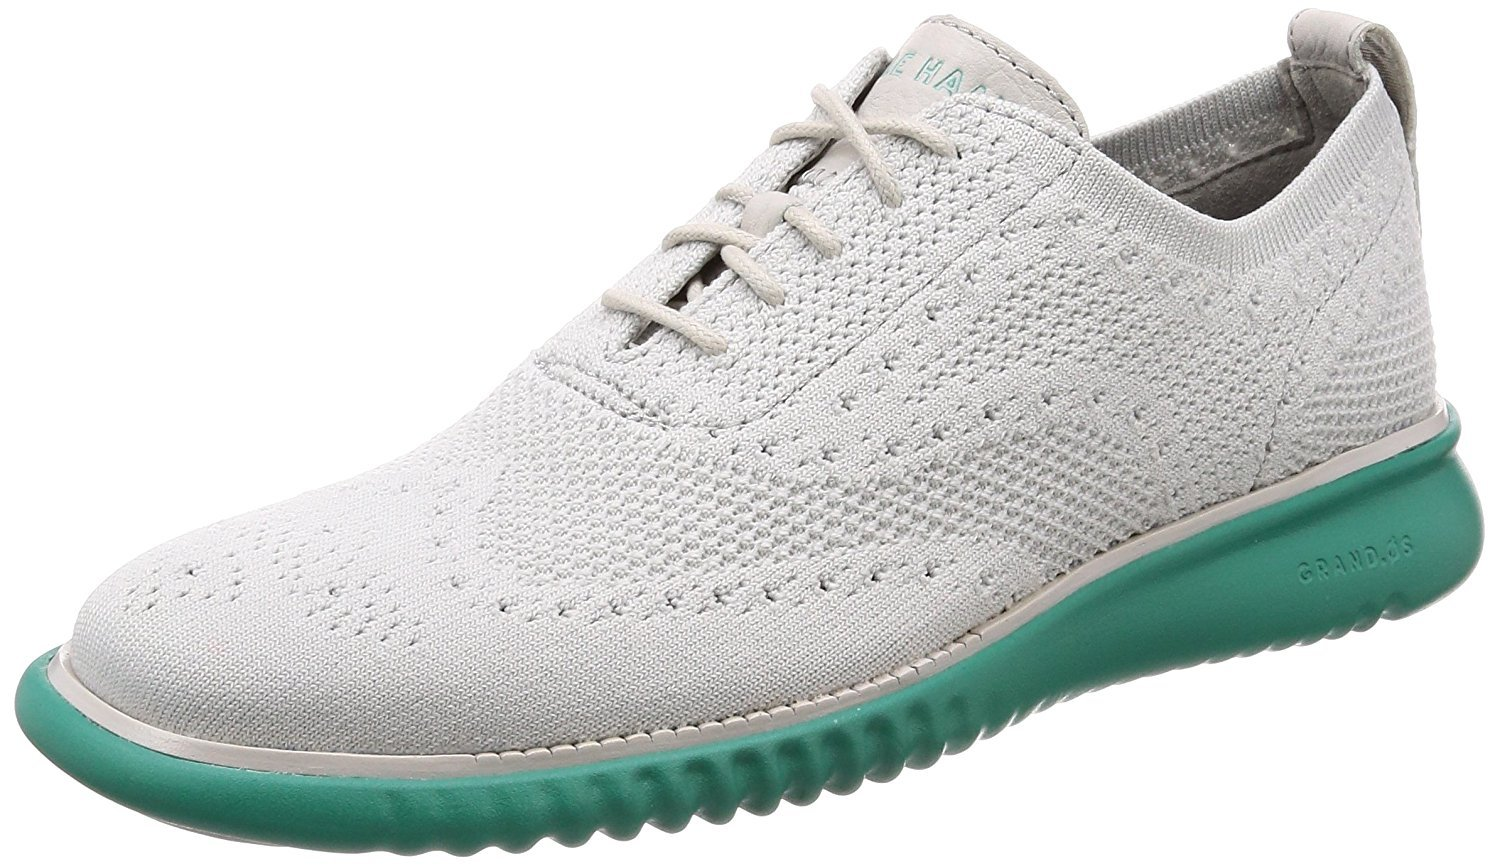 (コール ハーン) COLE HAAN Men`s 2.Zerogrand Stitchlite Oxford 男性のオックスフォードシューズ(並行輸入品) B07D81MDRN 8.5(M)US|Vapor Gray Knit-pool Green